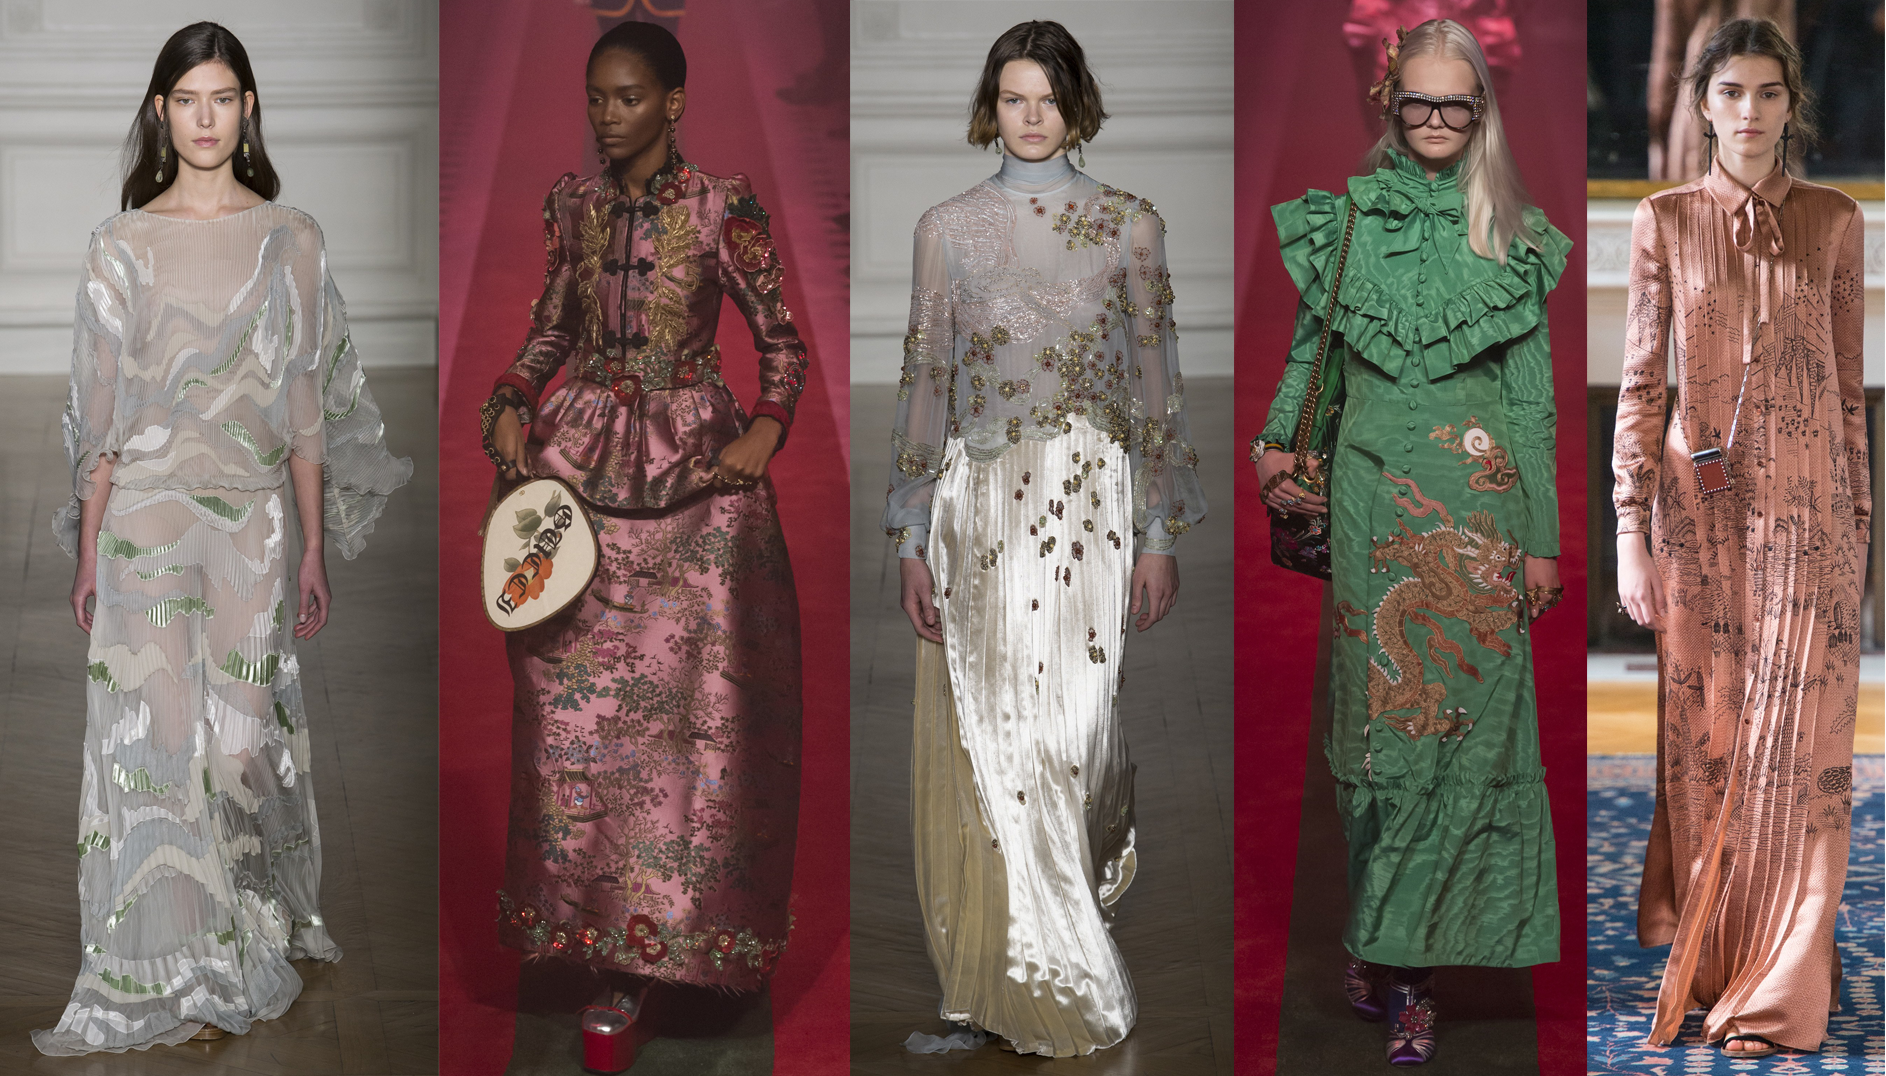 Left to Right: Valentino Spring 17 Couture, Gucci RTW SS17, Valentino Spring 17 Couture, Gucci RTW SS17, Valentino RTW SS17